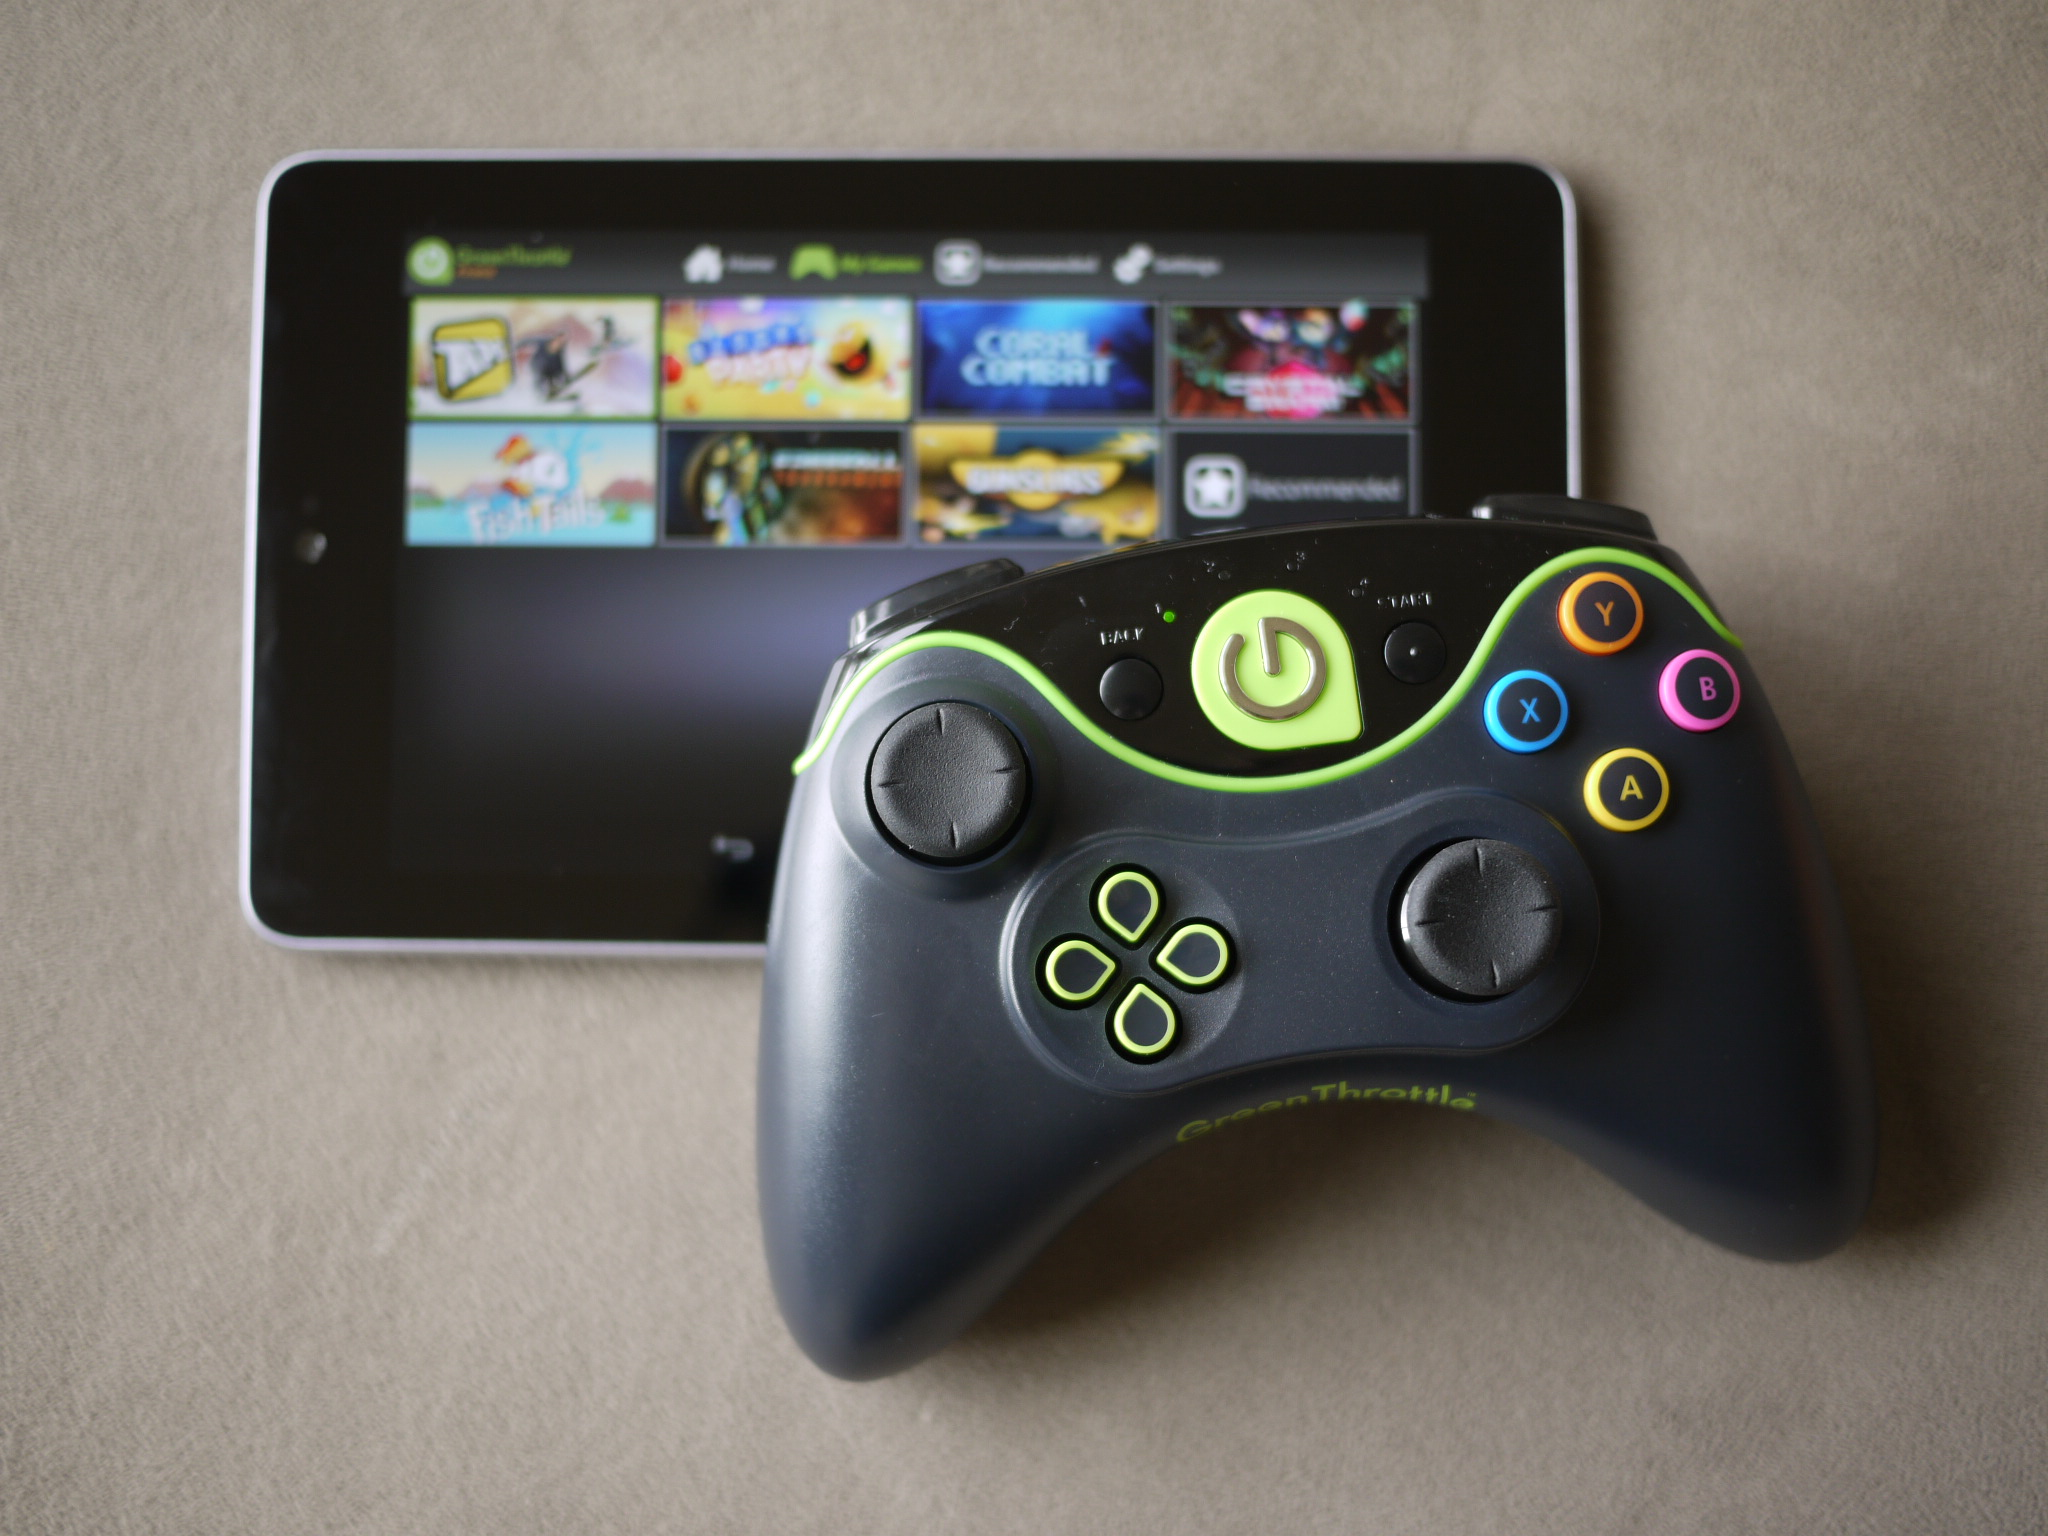 Green Throttle Review Bonnie Cha Product Reviews Allthingsd Joystick It Gaming For Smartphone Pad Tab P1040106